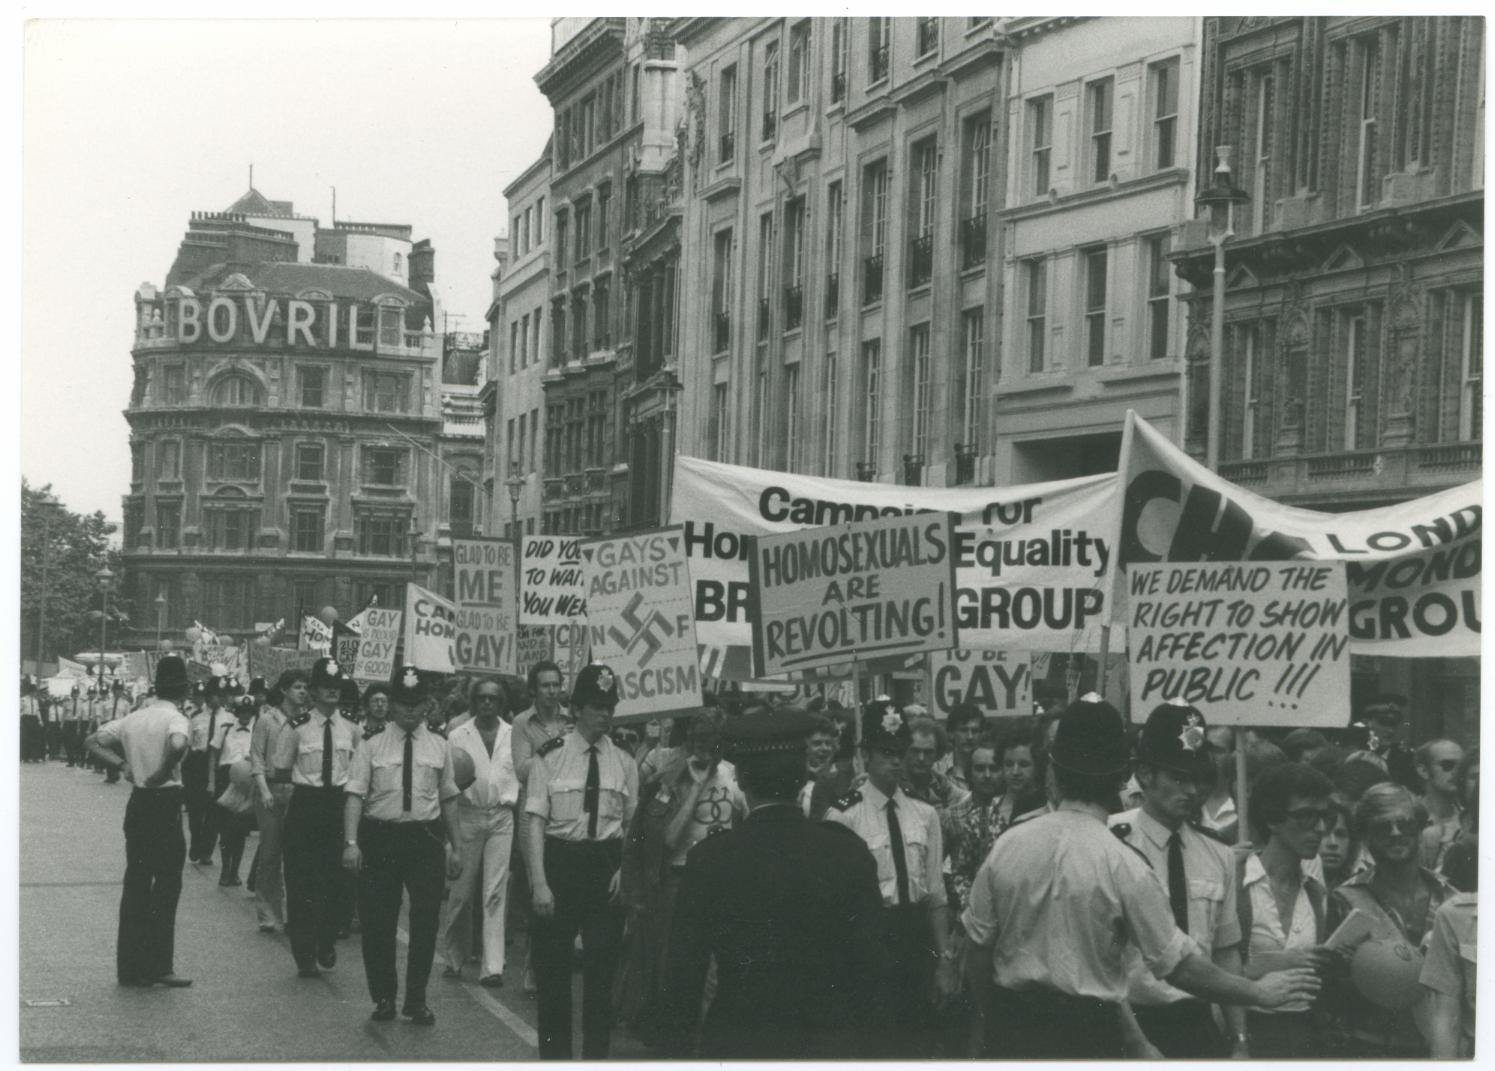 Marchers, banners and police at Gay Pride march, London, 1974. Photo credit: LSE Library